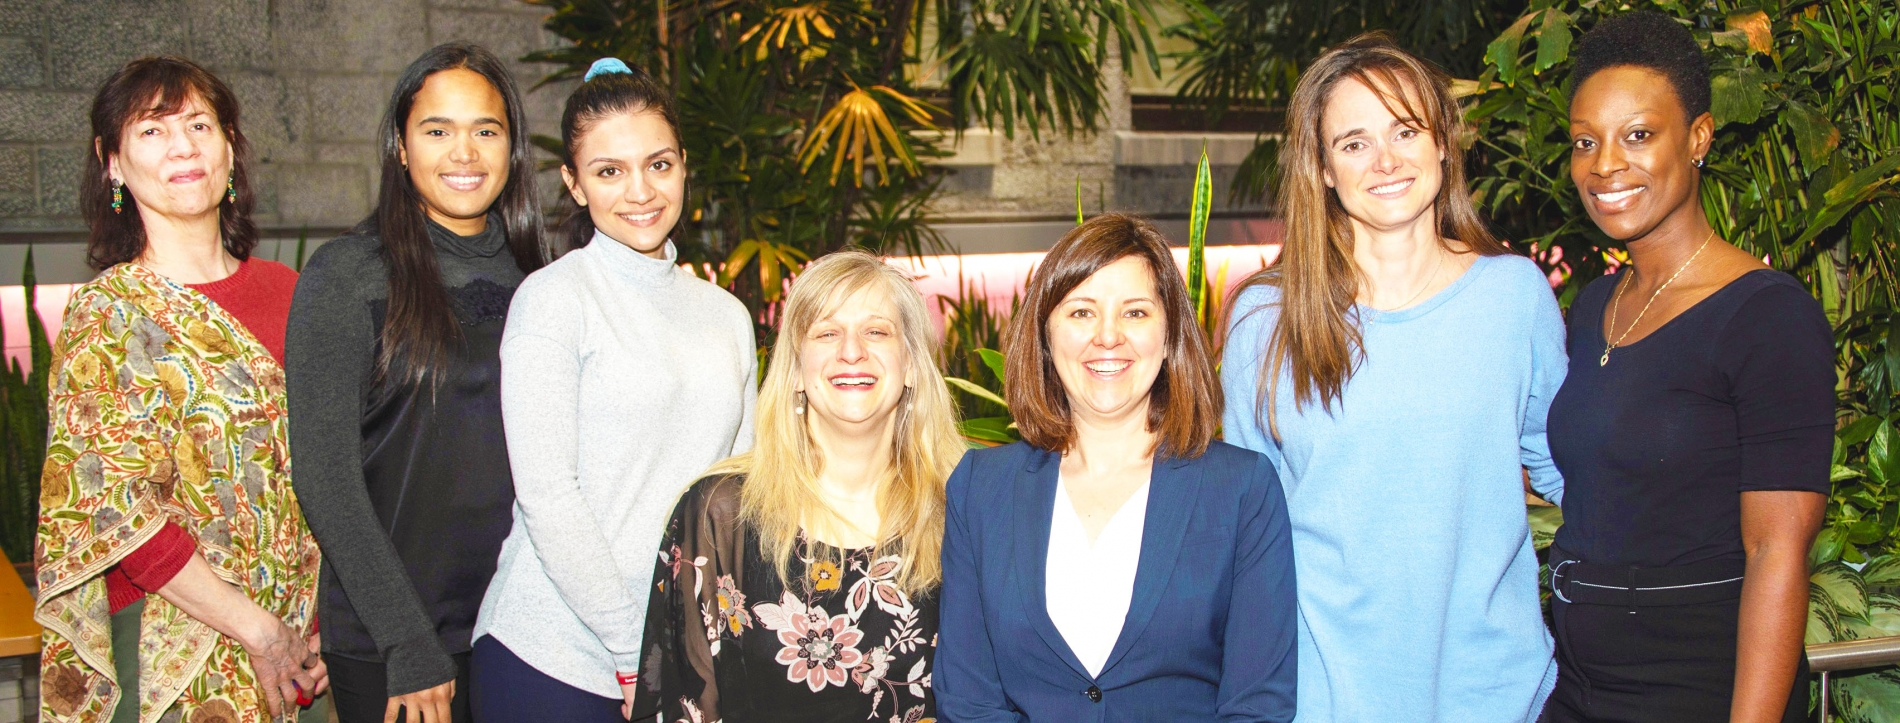 Women from The Neuro's Social Services team